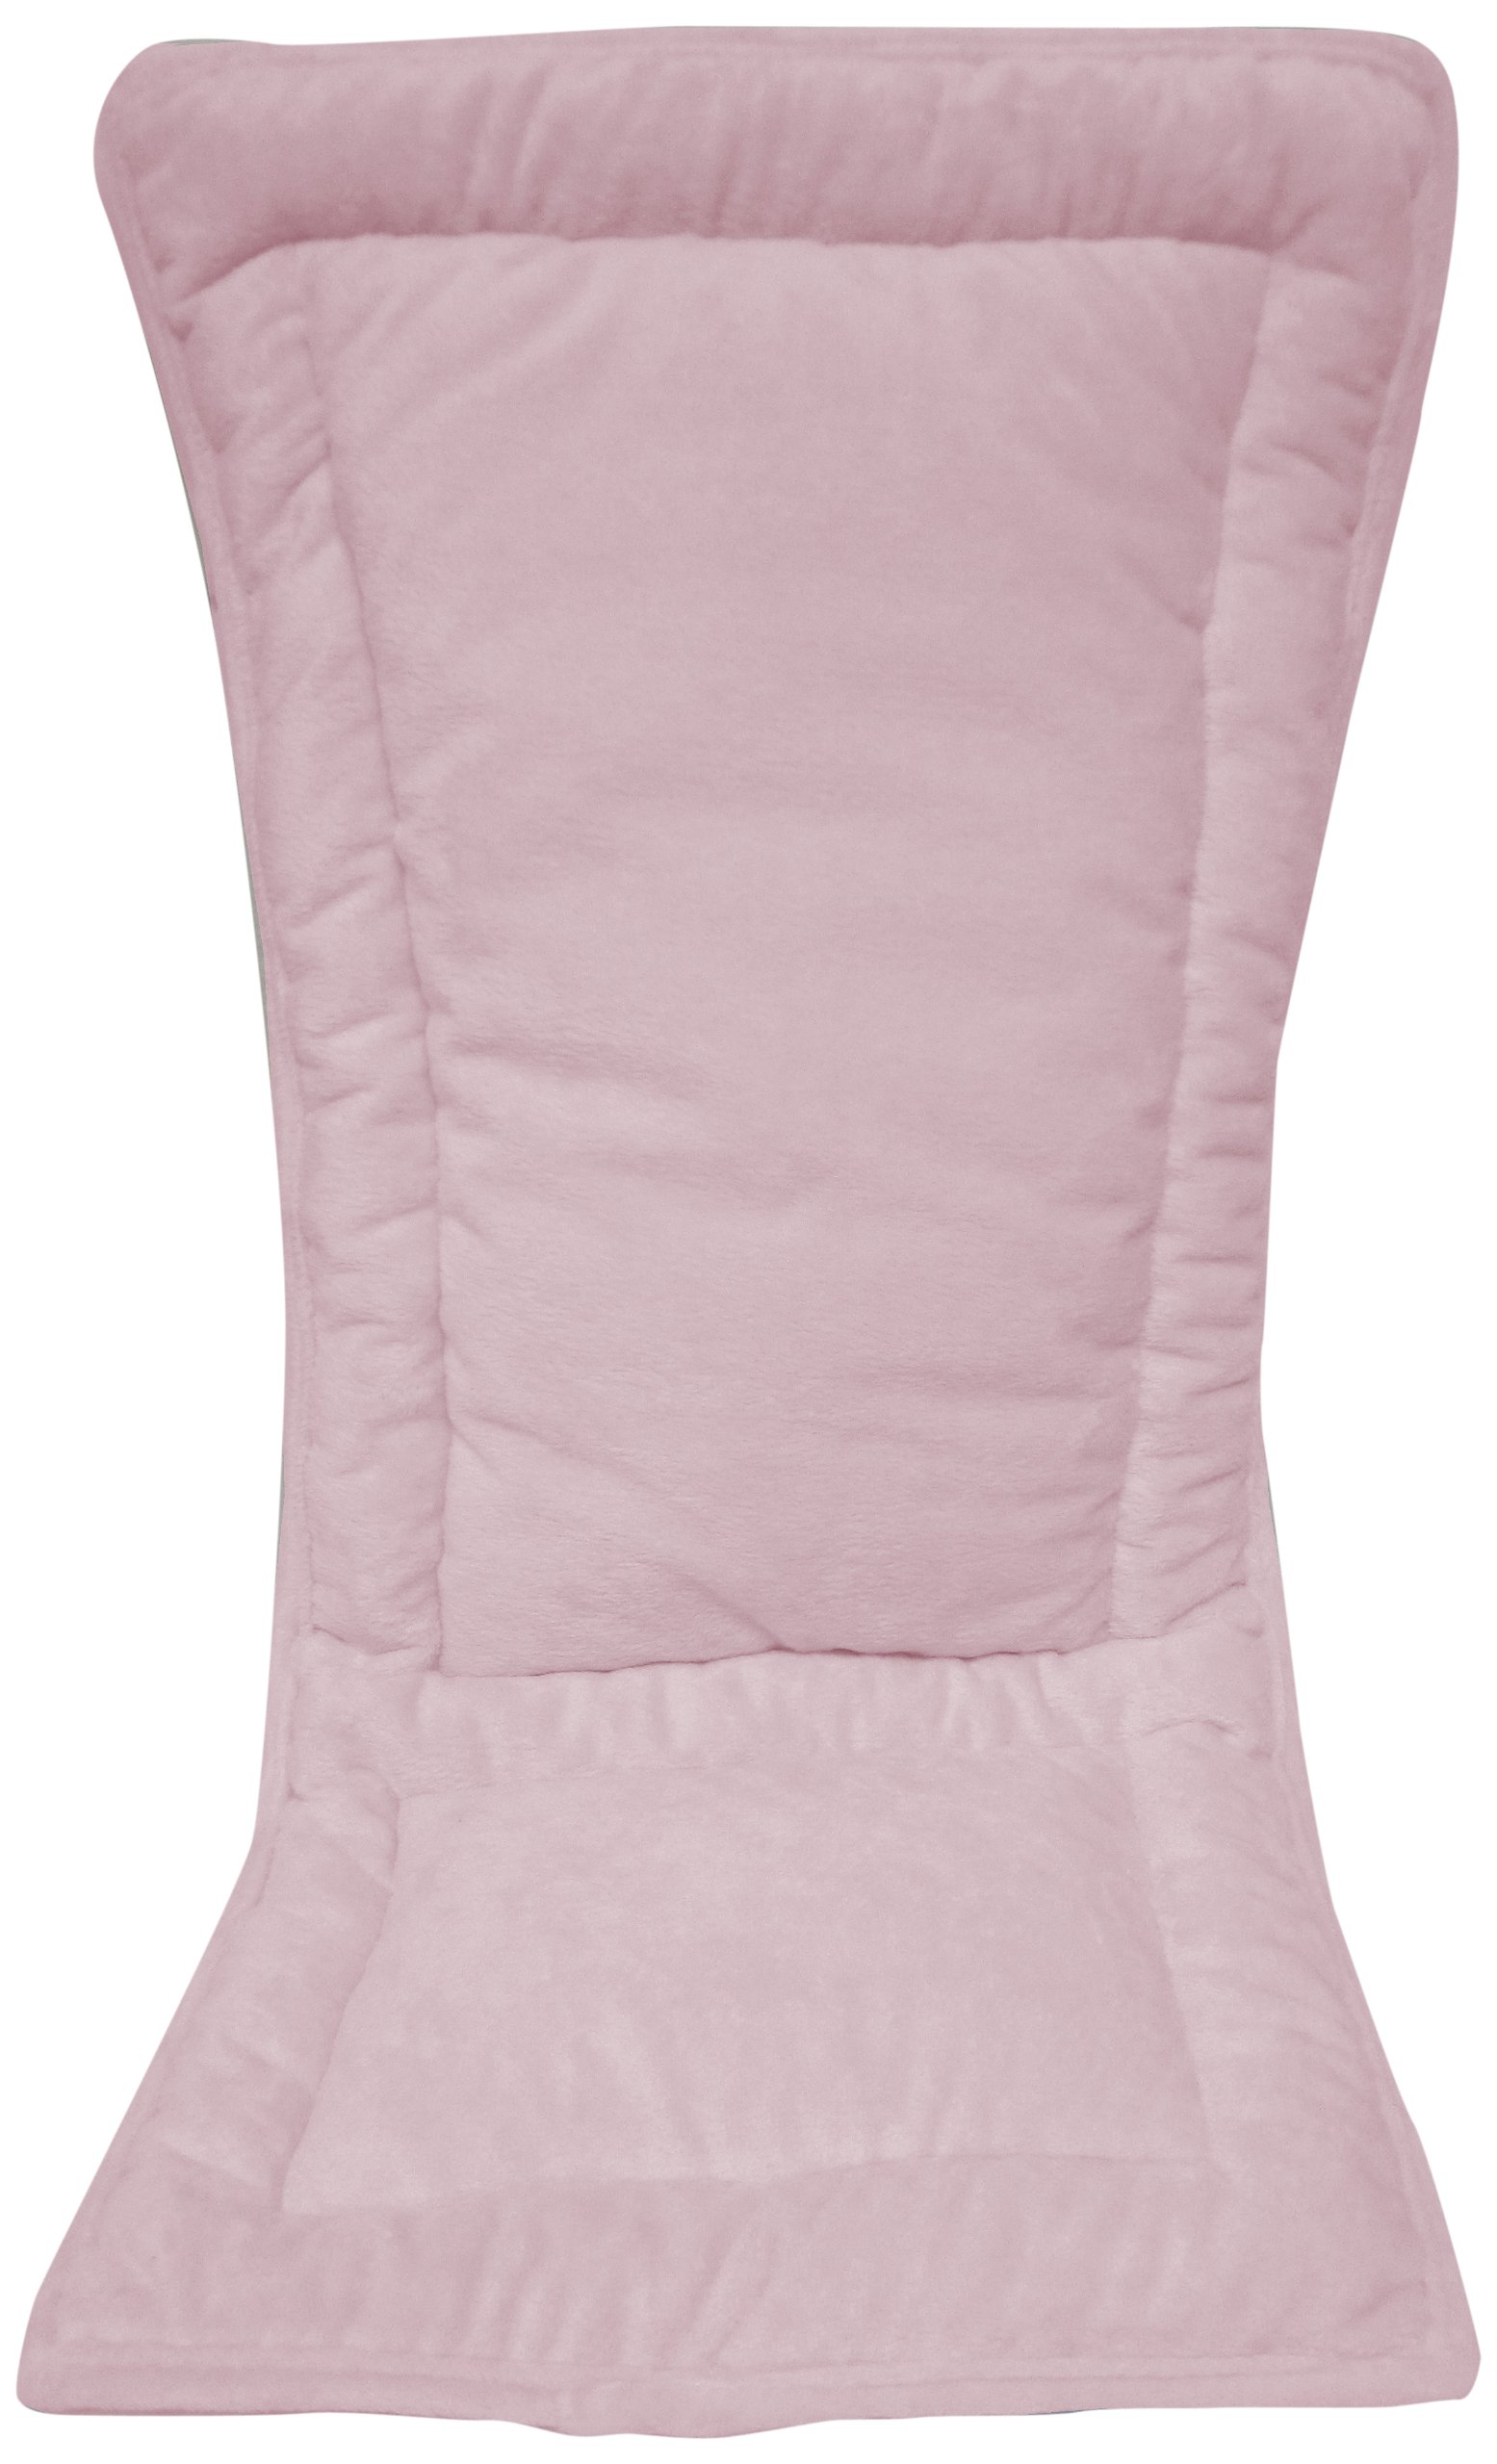 Baby Doll Bedding High Chair Cover, Pink